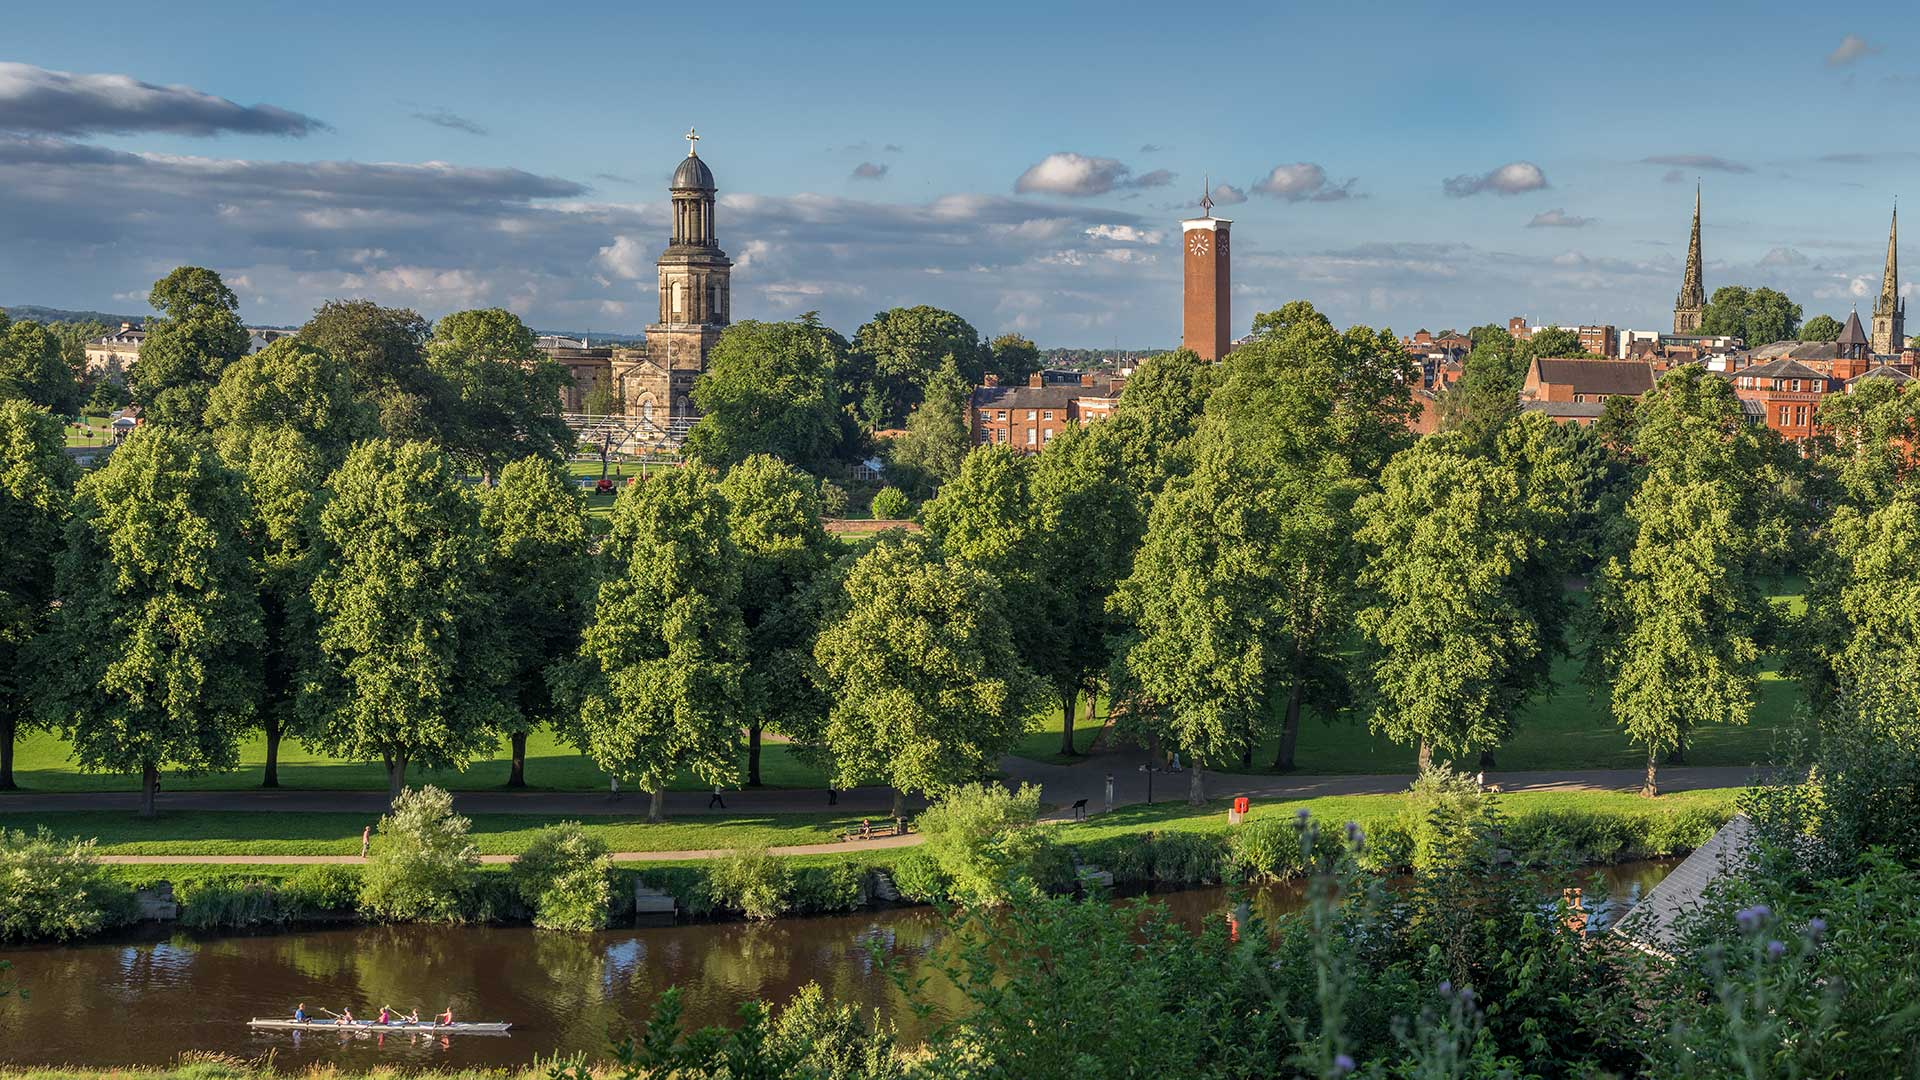 View across the river Severn towards Shrewsbury town centre